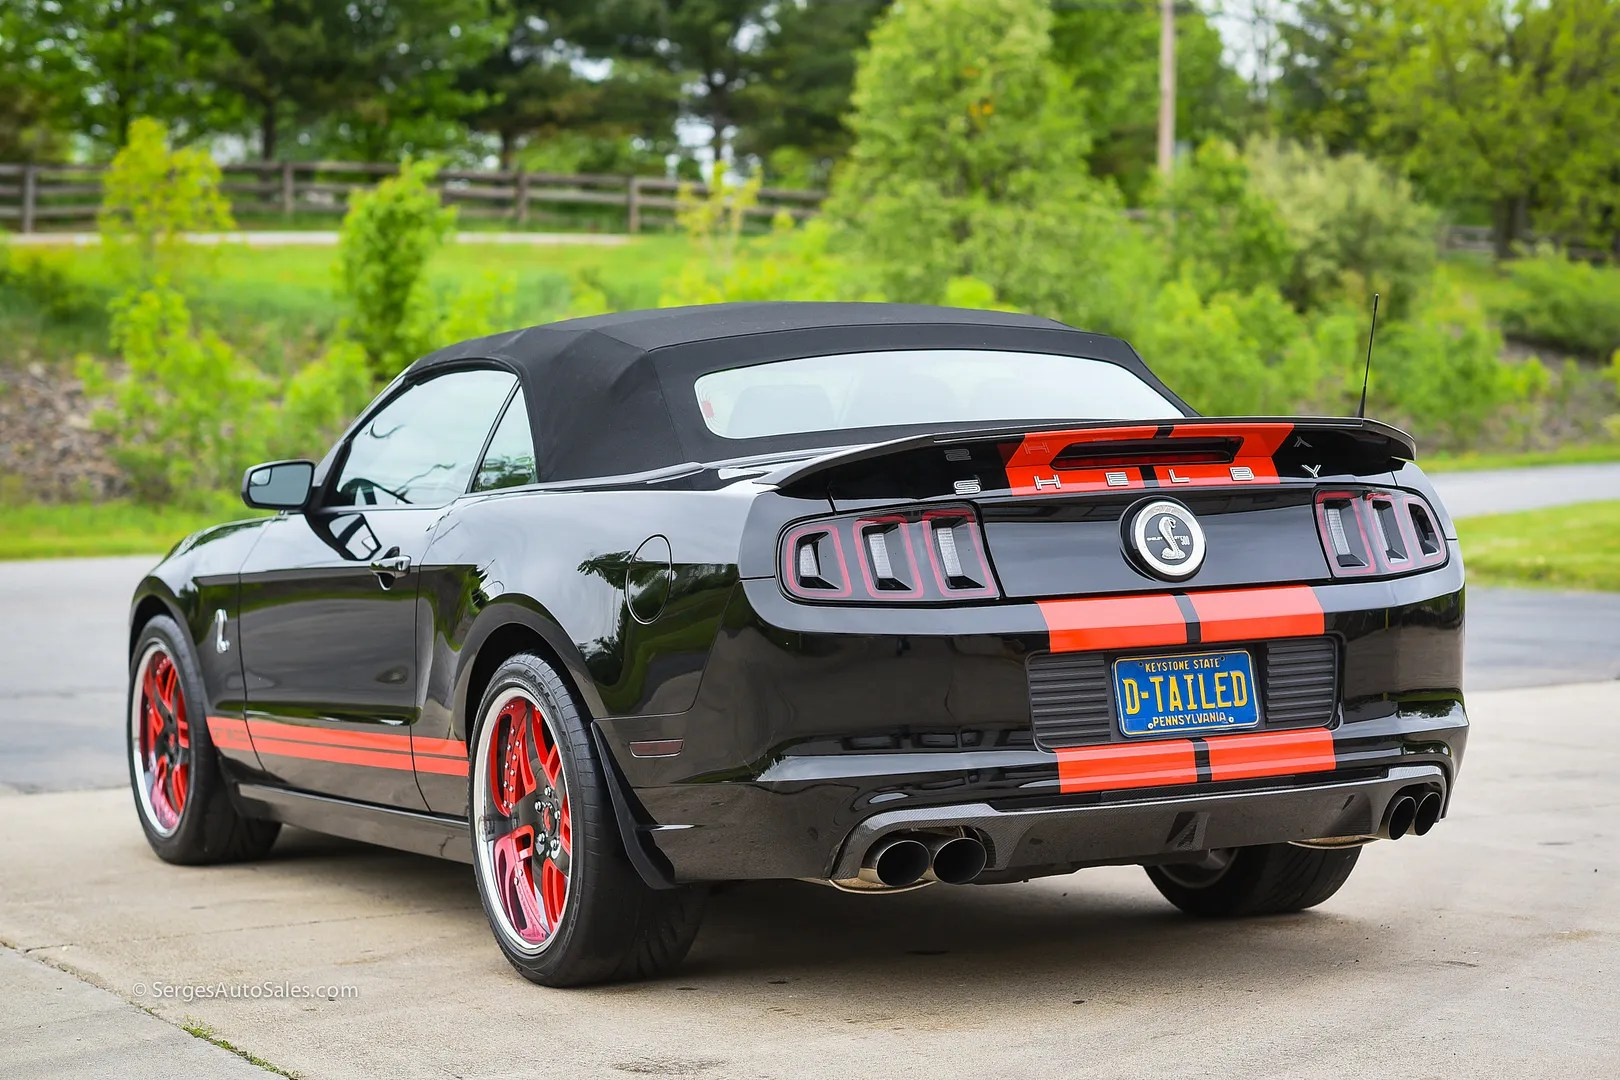 photo Serges-Auto-Sales-shelby-mustang-gt-for-sale-convertible-gt500-scranton-pa-10_zpsnotebrxw.jpg